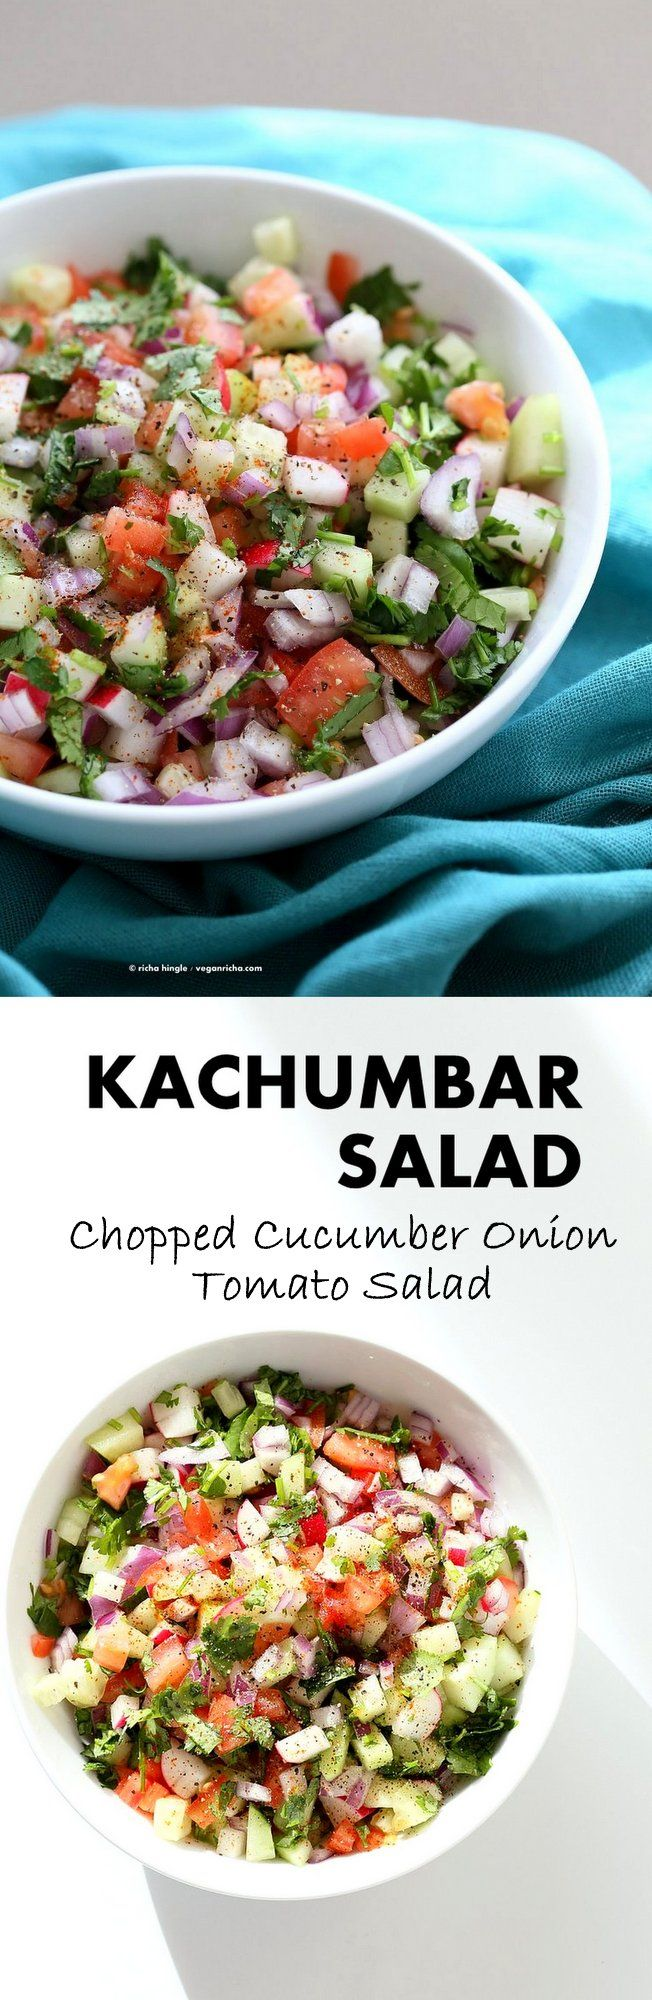 Kachumber Salad - Cucumber Tomato Onion Salad Recipe. Kachumbar is a simple Chopped Summer Salad with chopped onions, tomatoes, cucumbers and a salt pepper lemon dressing. Serve as a side with Indian curries, or as a dip with chips, or over burgers. Vegan Gluten-free Soy-free Oil-free Recipe   VeganRicha.com